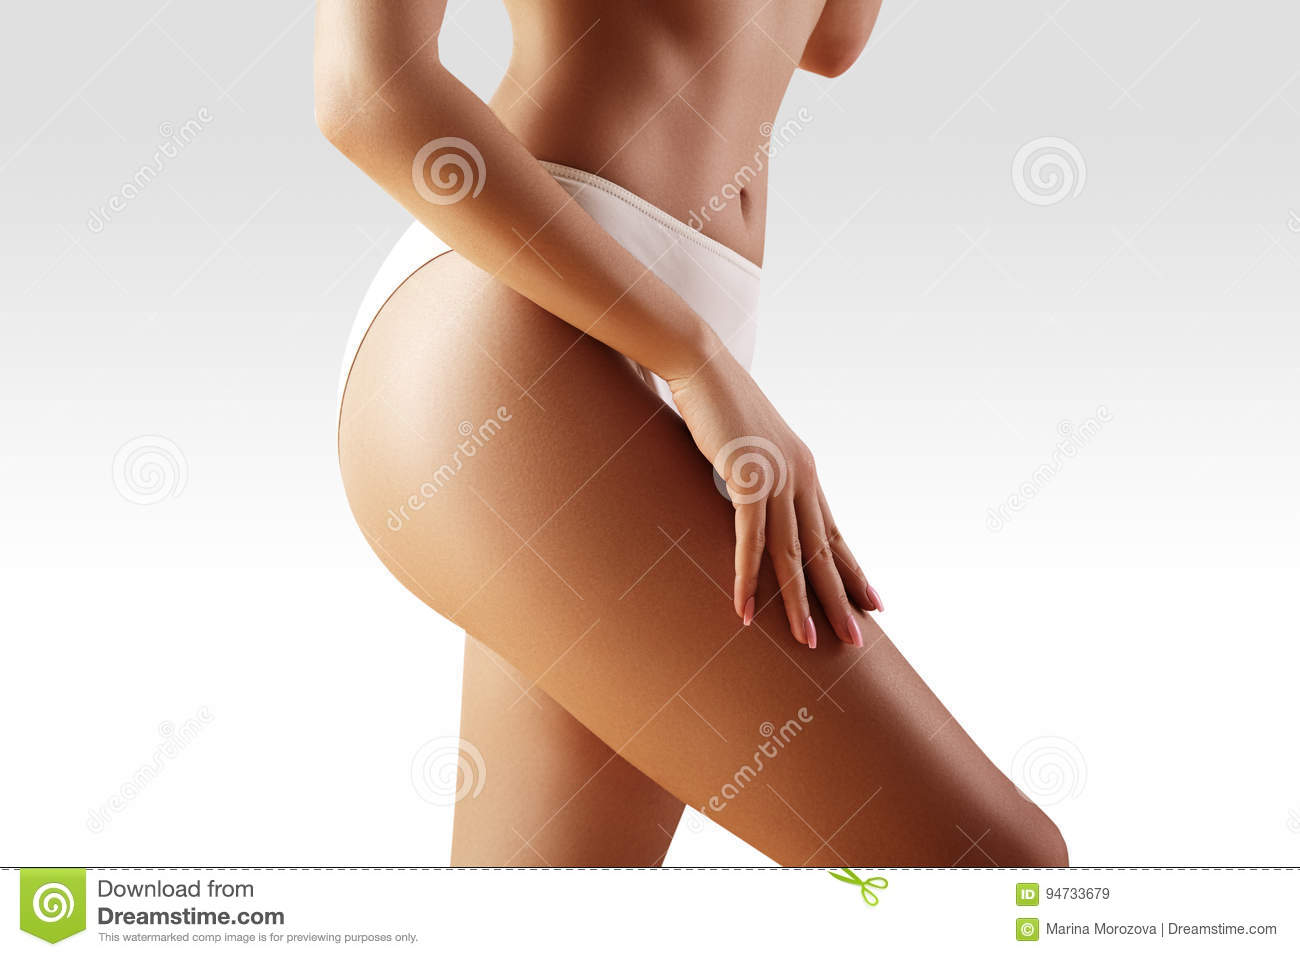 Spa, wellness. Healthy slim body. Beautiful hips. Fitness or plastic surgery. Perfect buttocks without cellulite